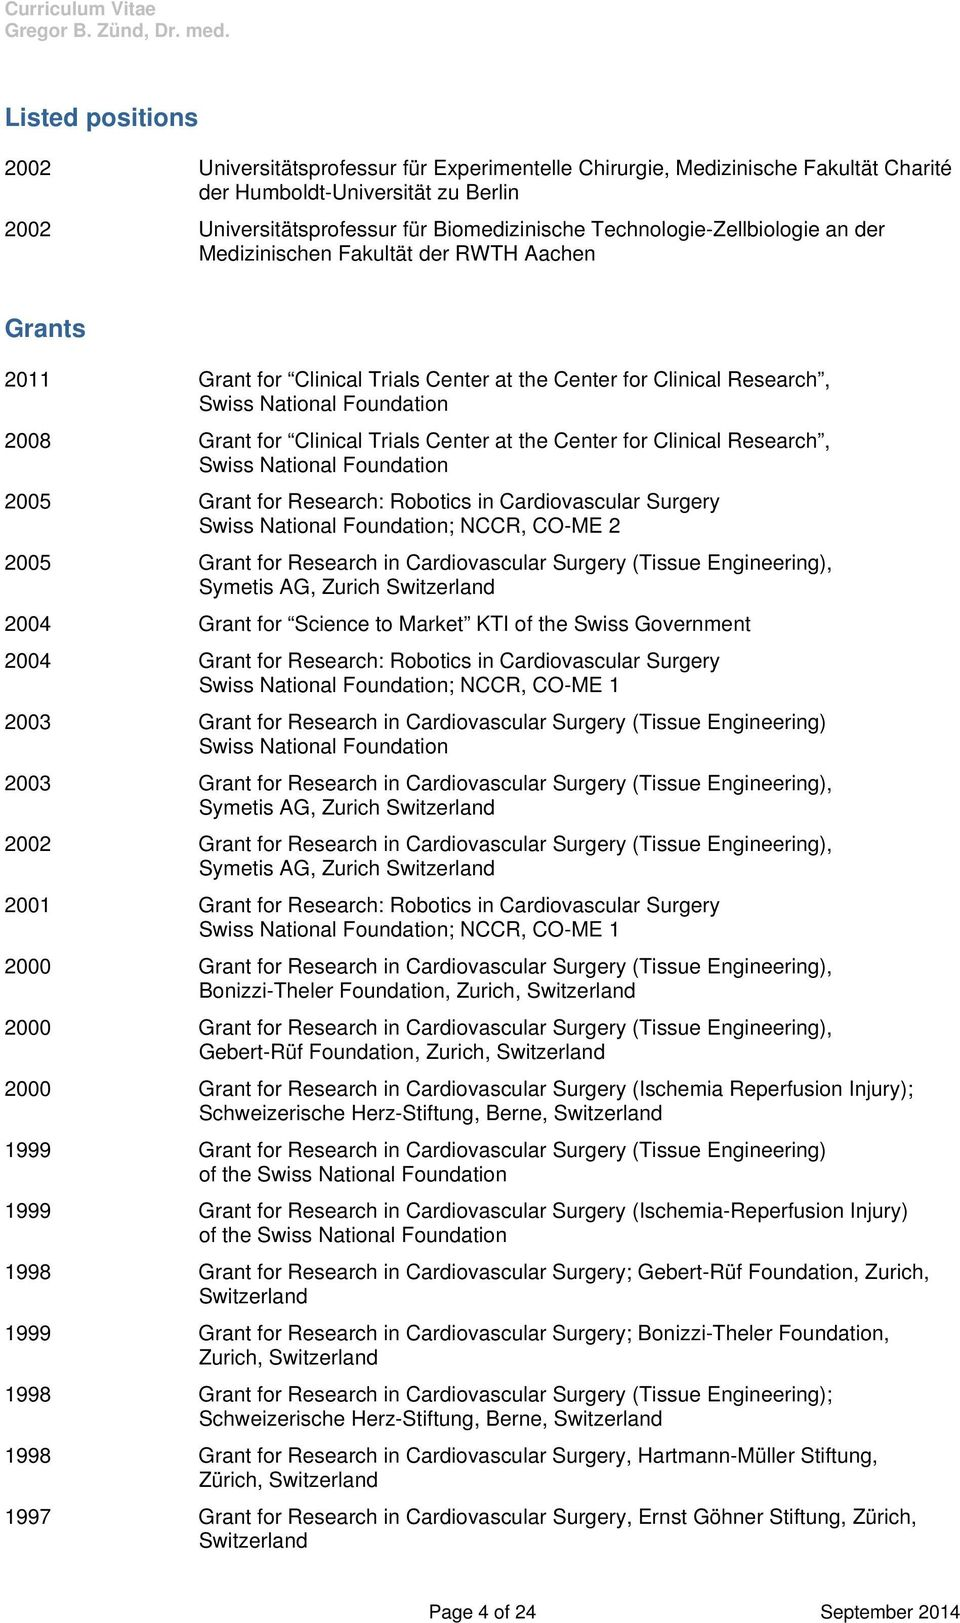 Center for Clinical Research, 2005 Grant for Research: Robotics in Cardiovascular Surgery ; NCCR, CO-ME 2 2005 Grant for Research in Cardiovascular Surgery (Tissue Engineering), 2004 Grant for